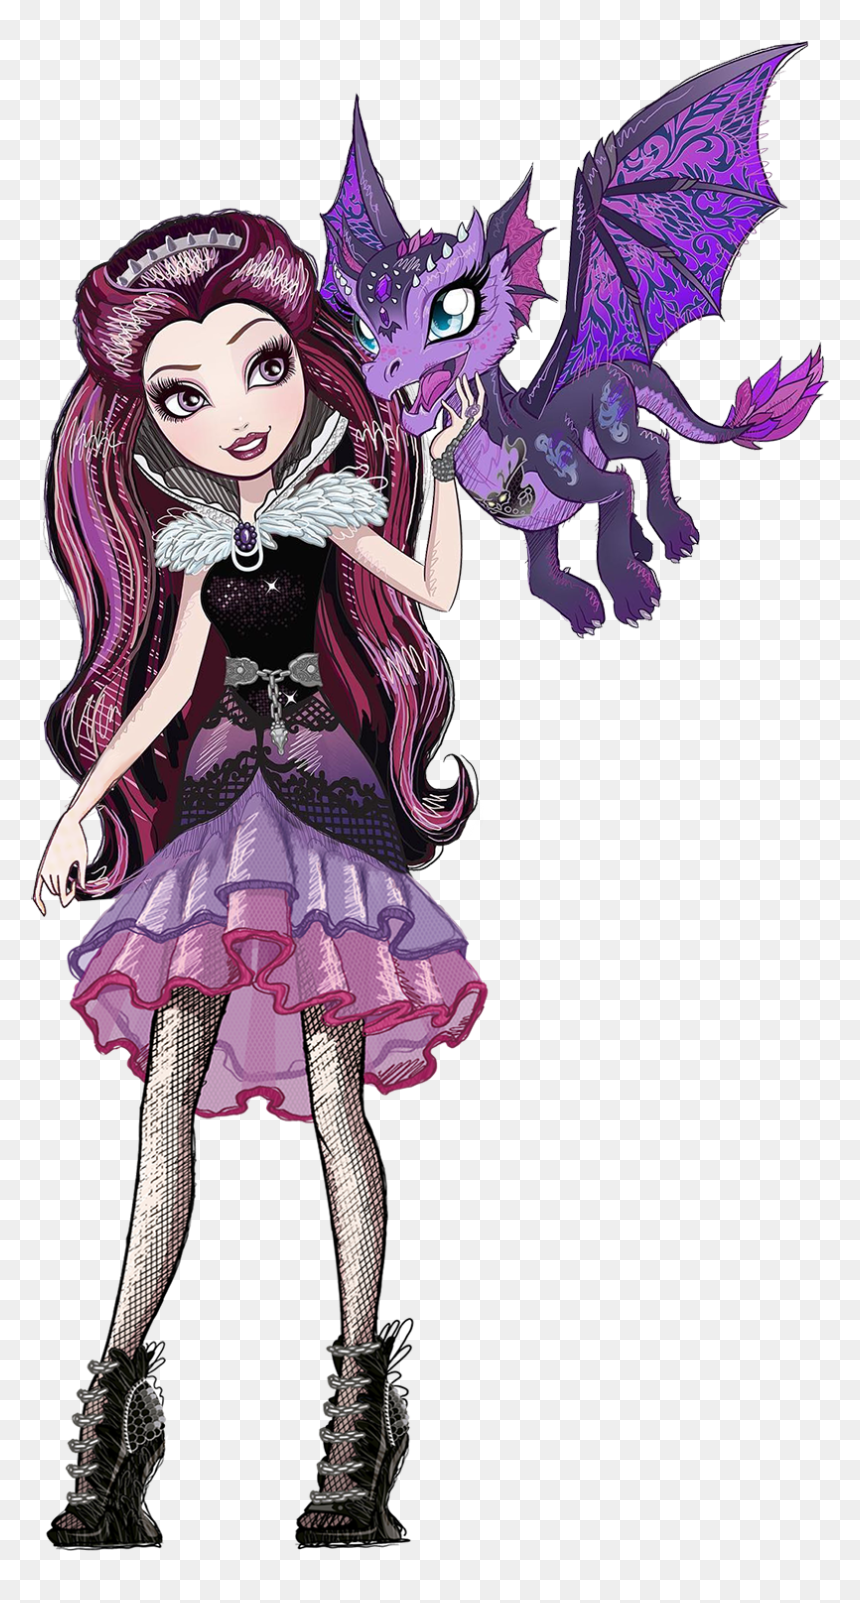 Ever After High Characters Raven Queen Hd Png Download Vhv